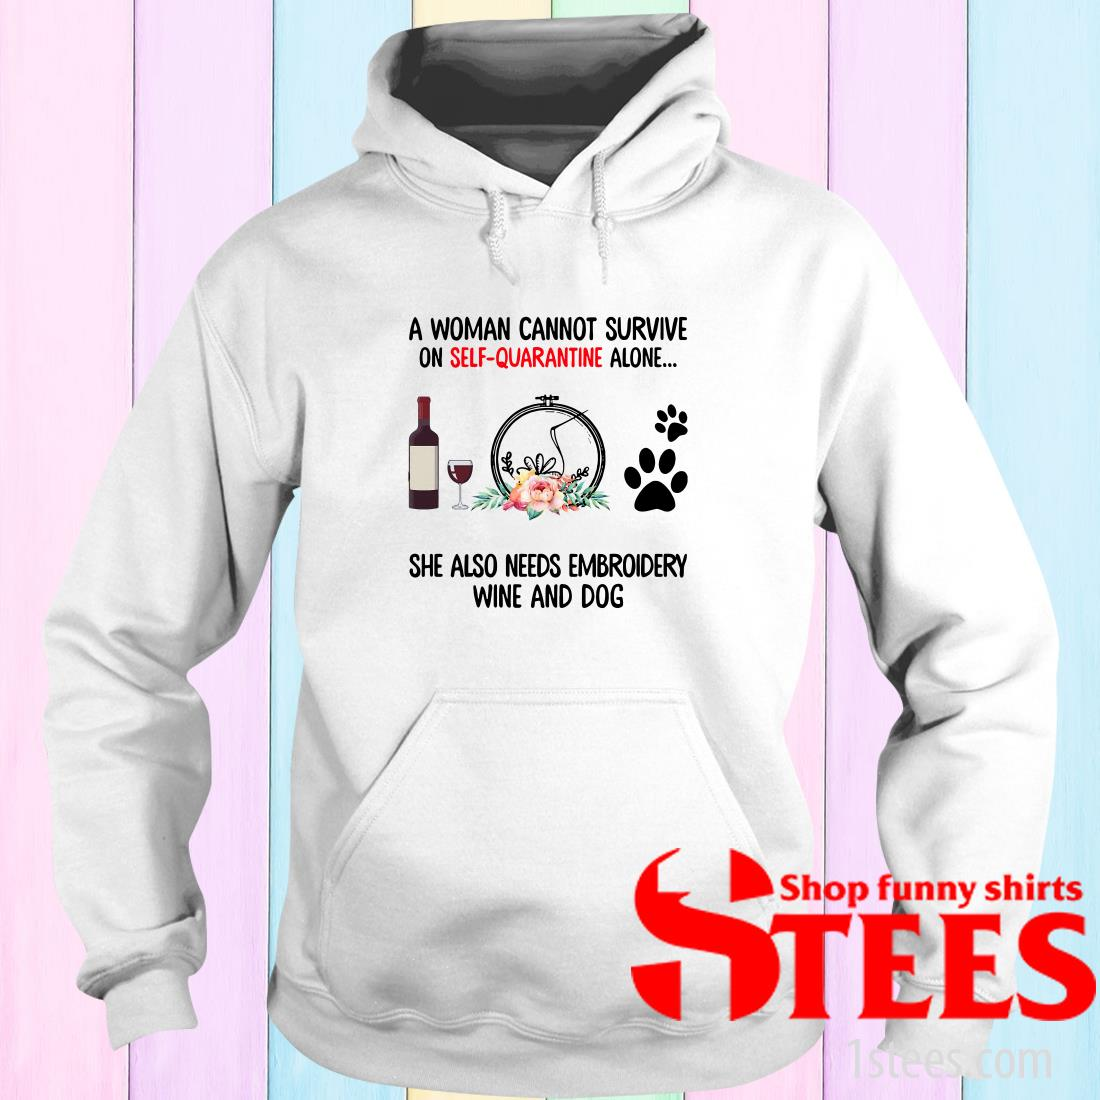 A Woman Cannot Survive On Self Quarantine Alone She Needs Wine Dog Embroidery Hoodies